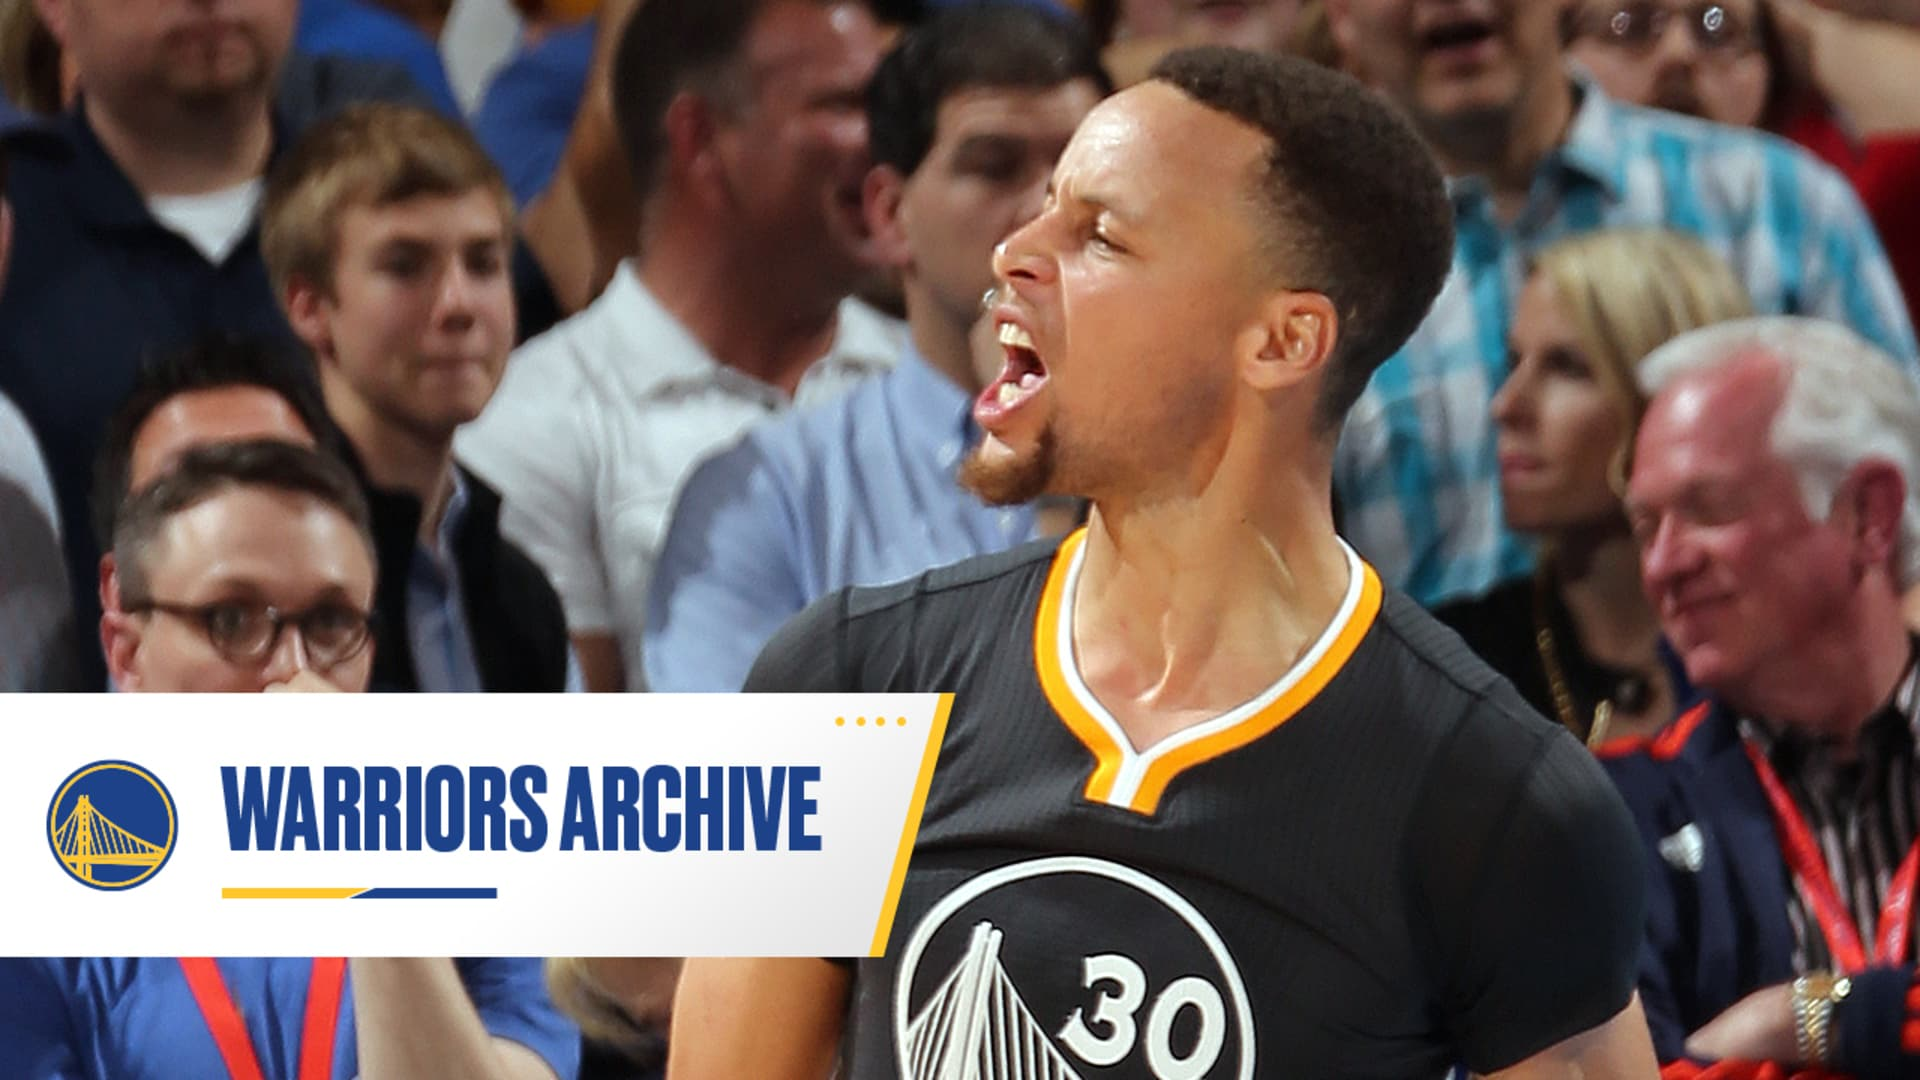 Stephen Curry Splashes His Way Into NBA Record Books in OT Win Over Oklahoma City Thunder